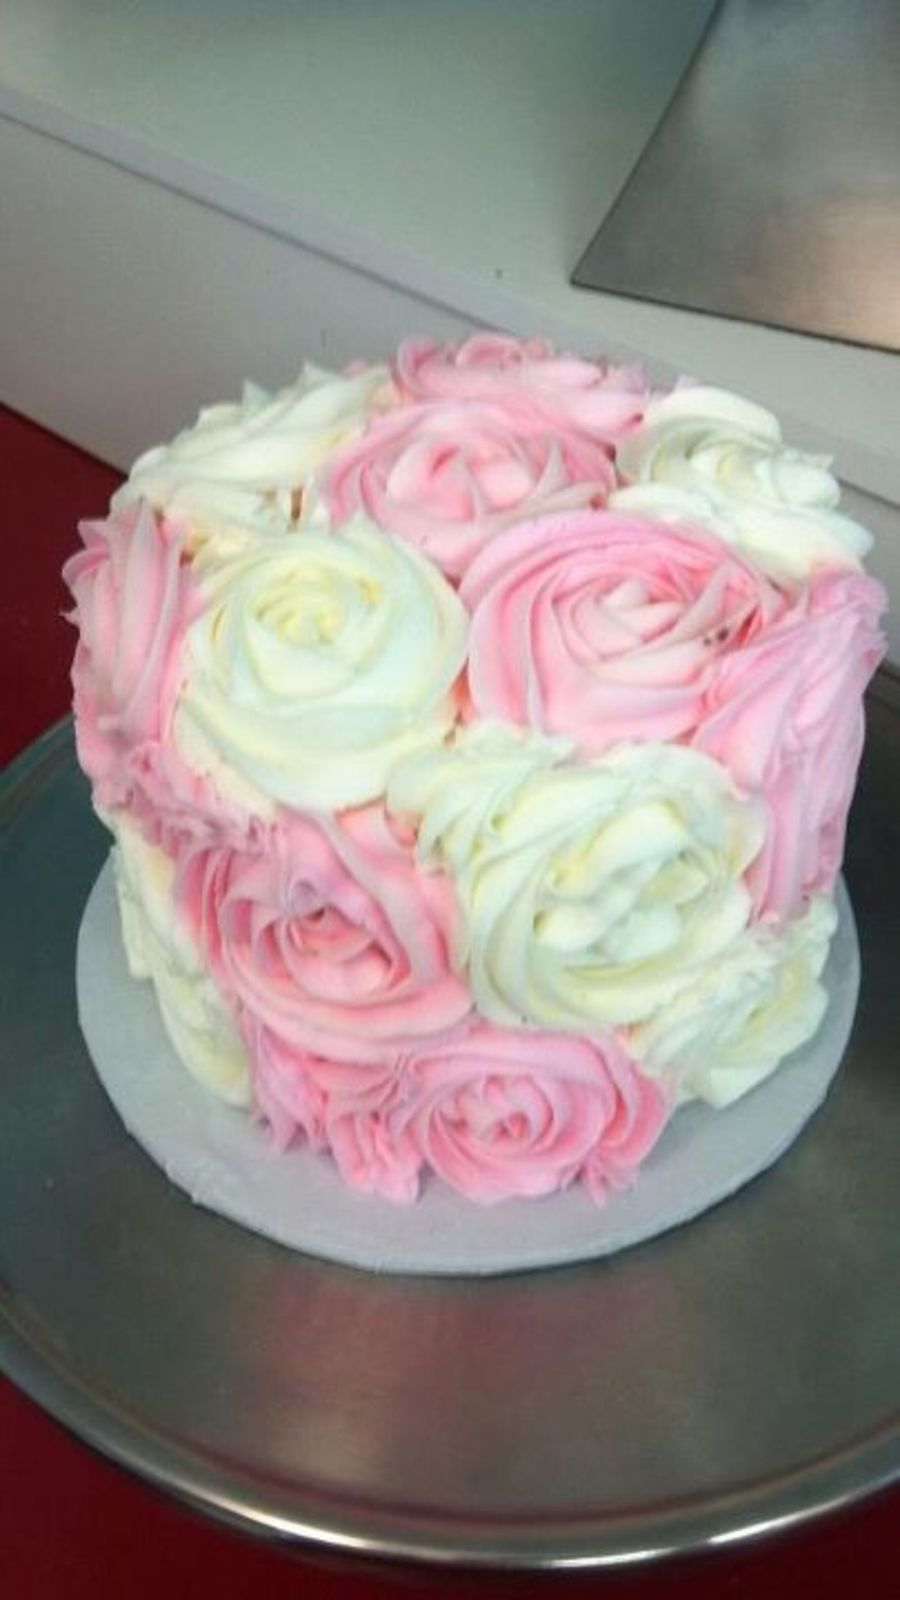 Pink Rosette Cake Images : Pink And White Rosette Cake - CakeCentral.com